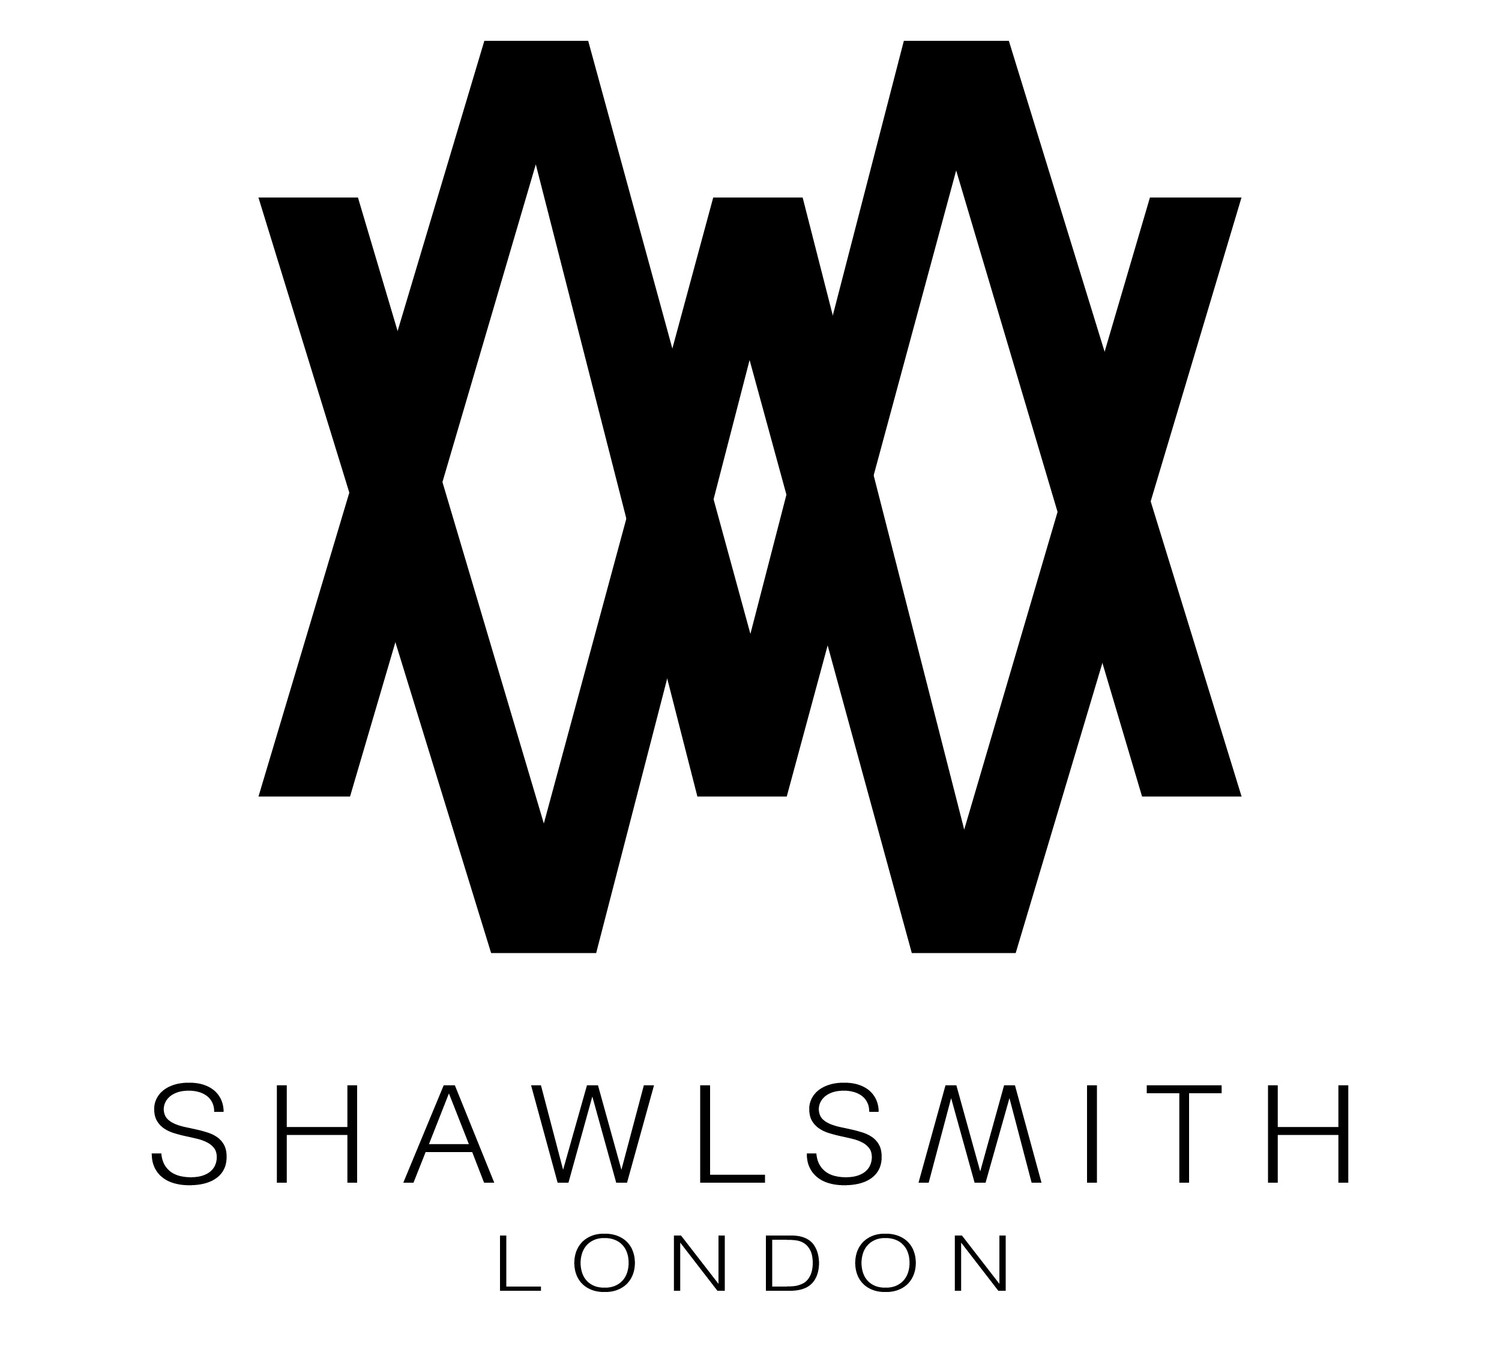 Shawlsmith London